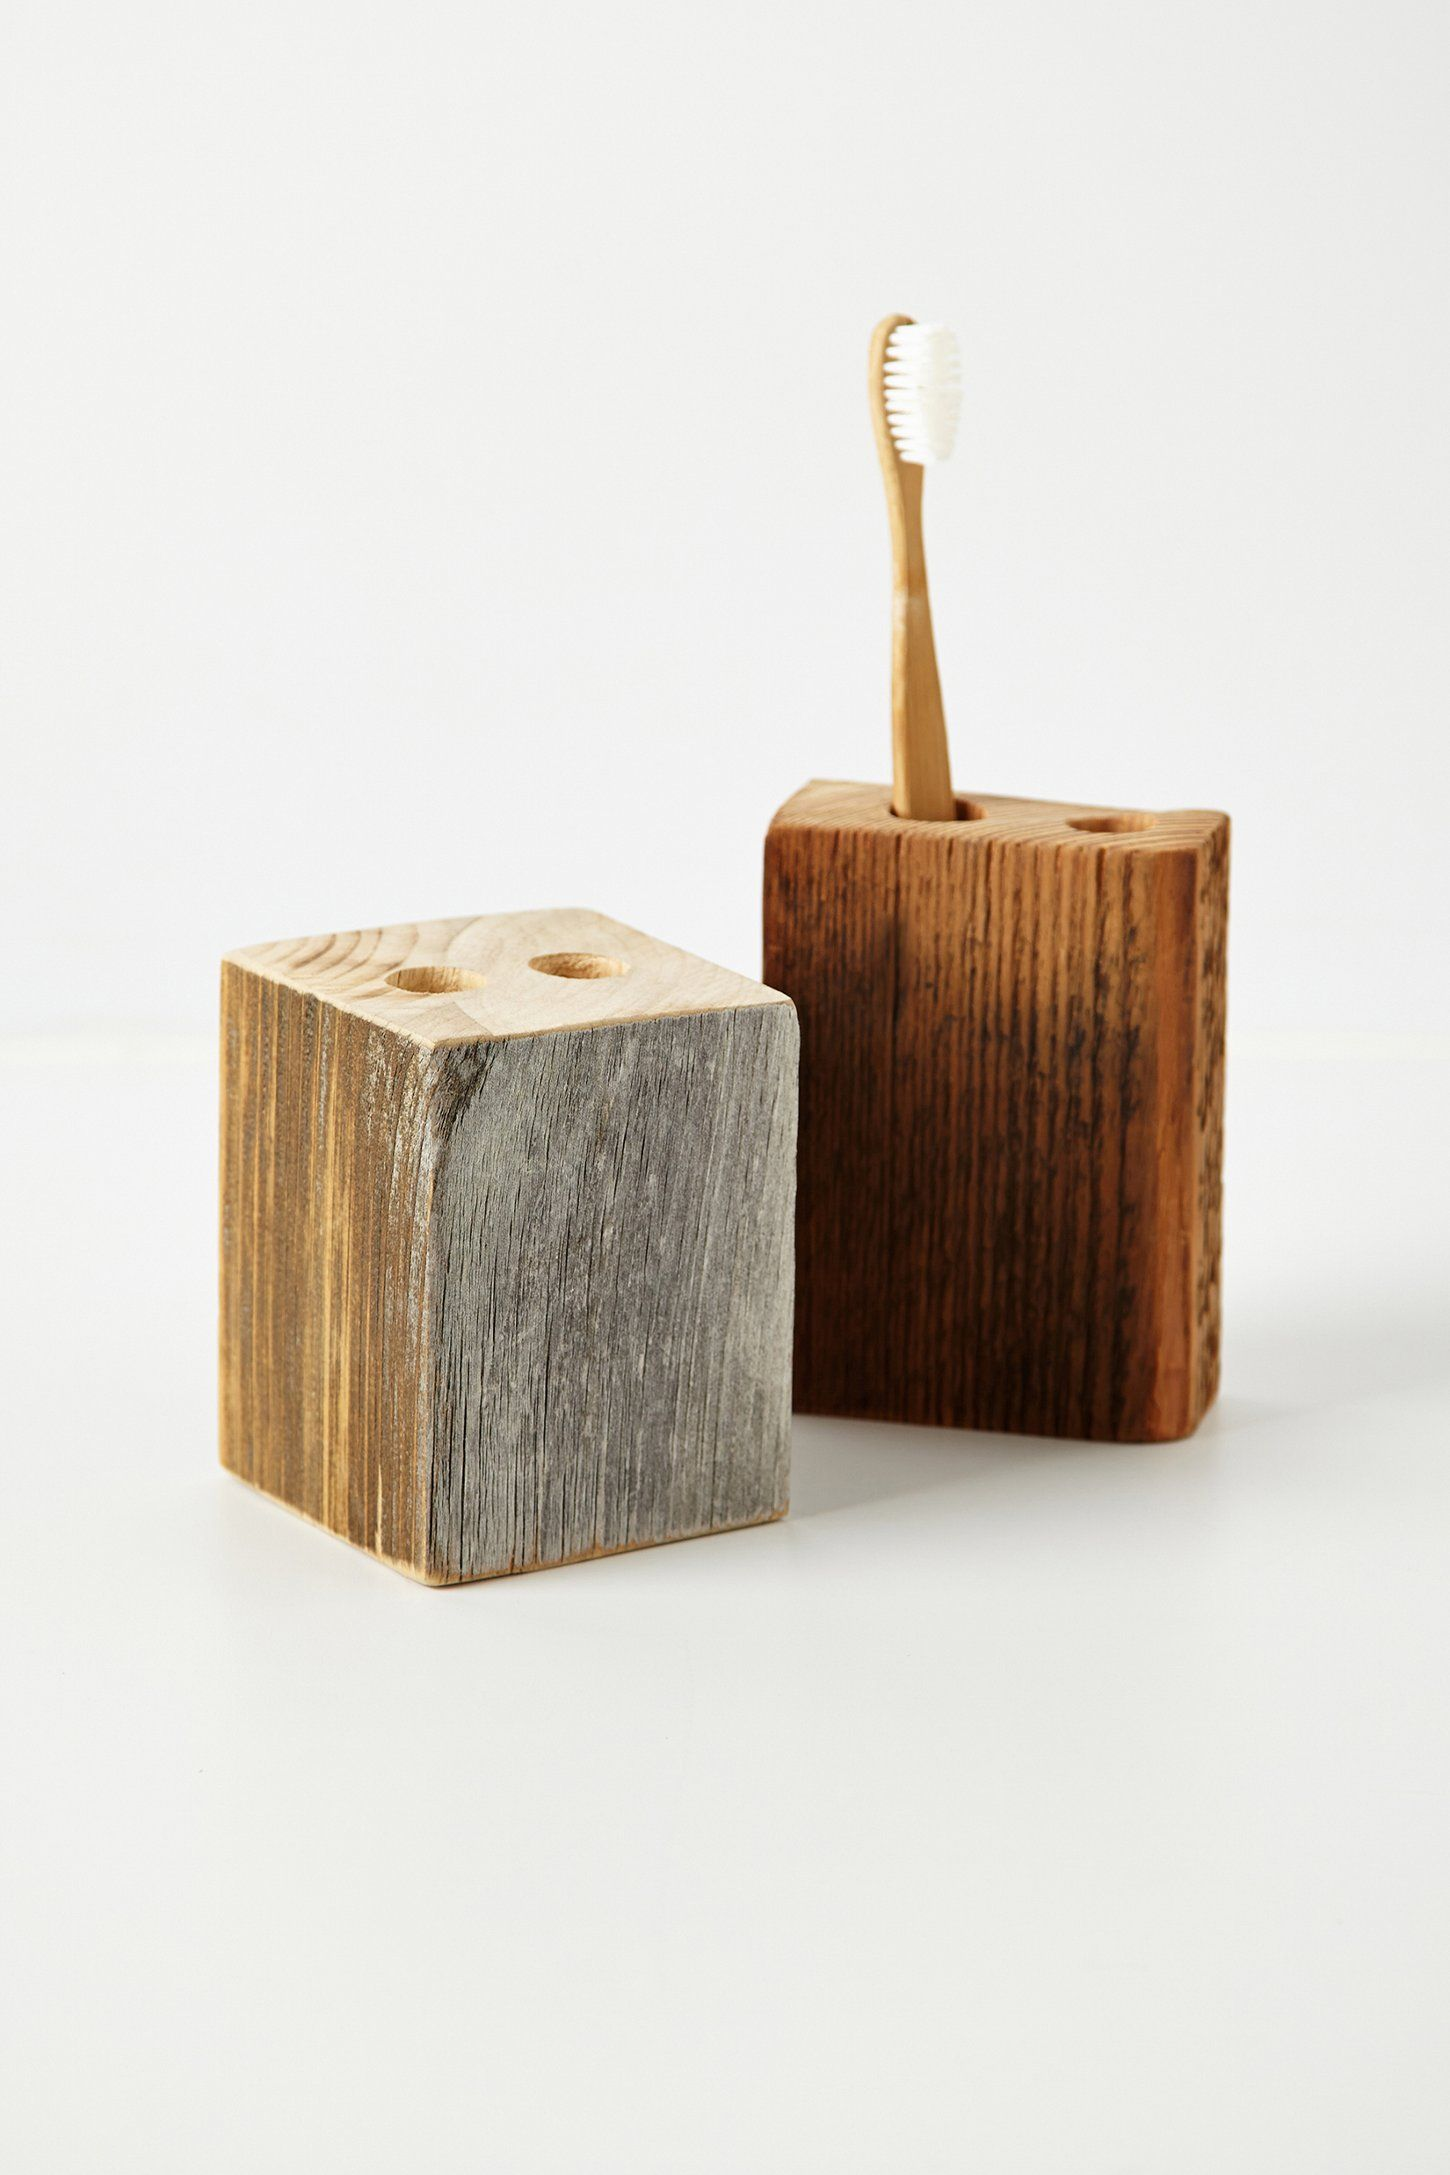 Timber Trail Toothbrush Holder Anthropologiecom Timber